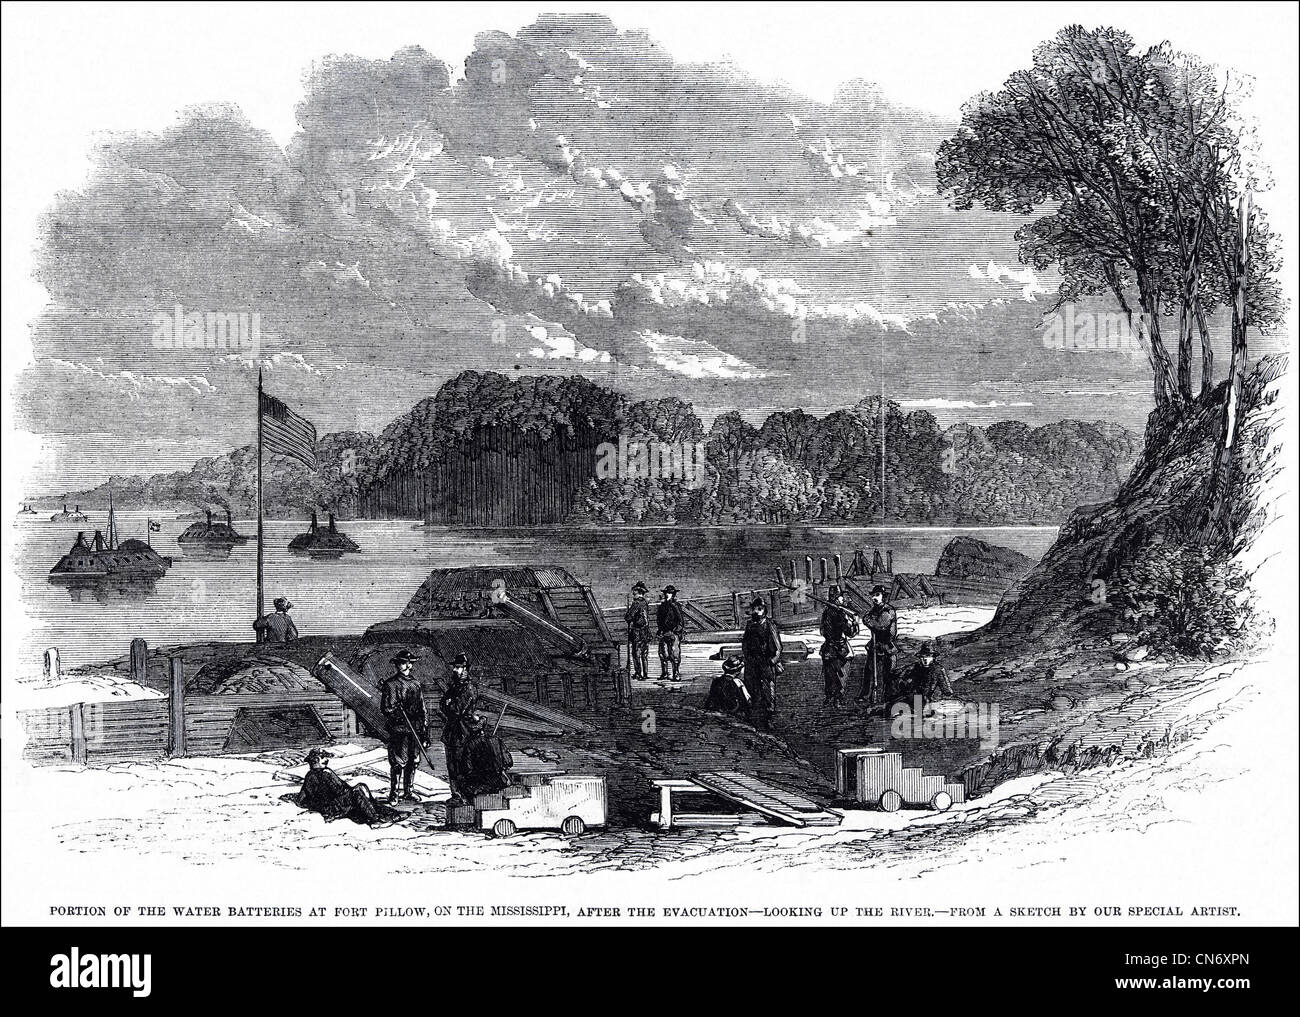 American Civil War 1861 - 1865 Fort Pillow on the Mississippi River after the evacuation by Confederate soldiers - Stock Image